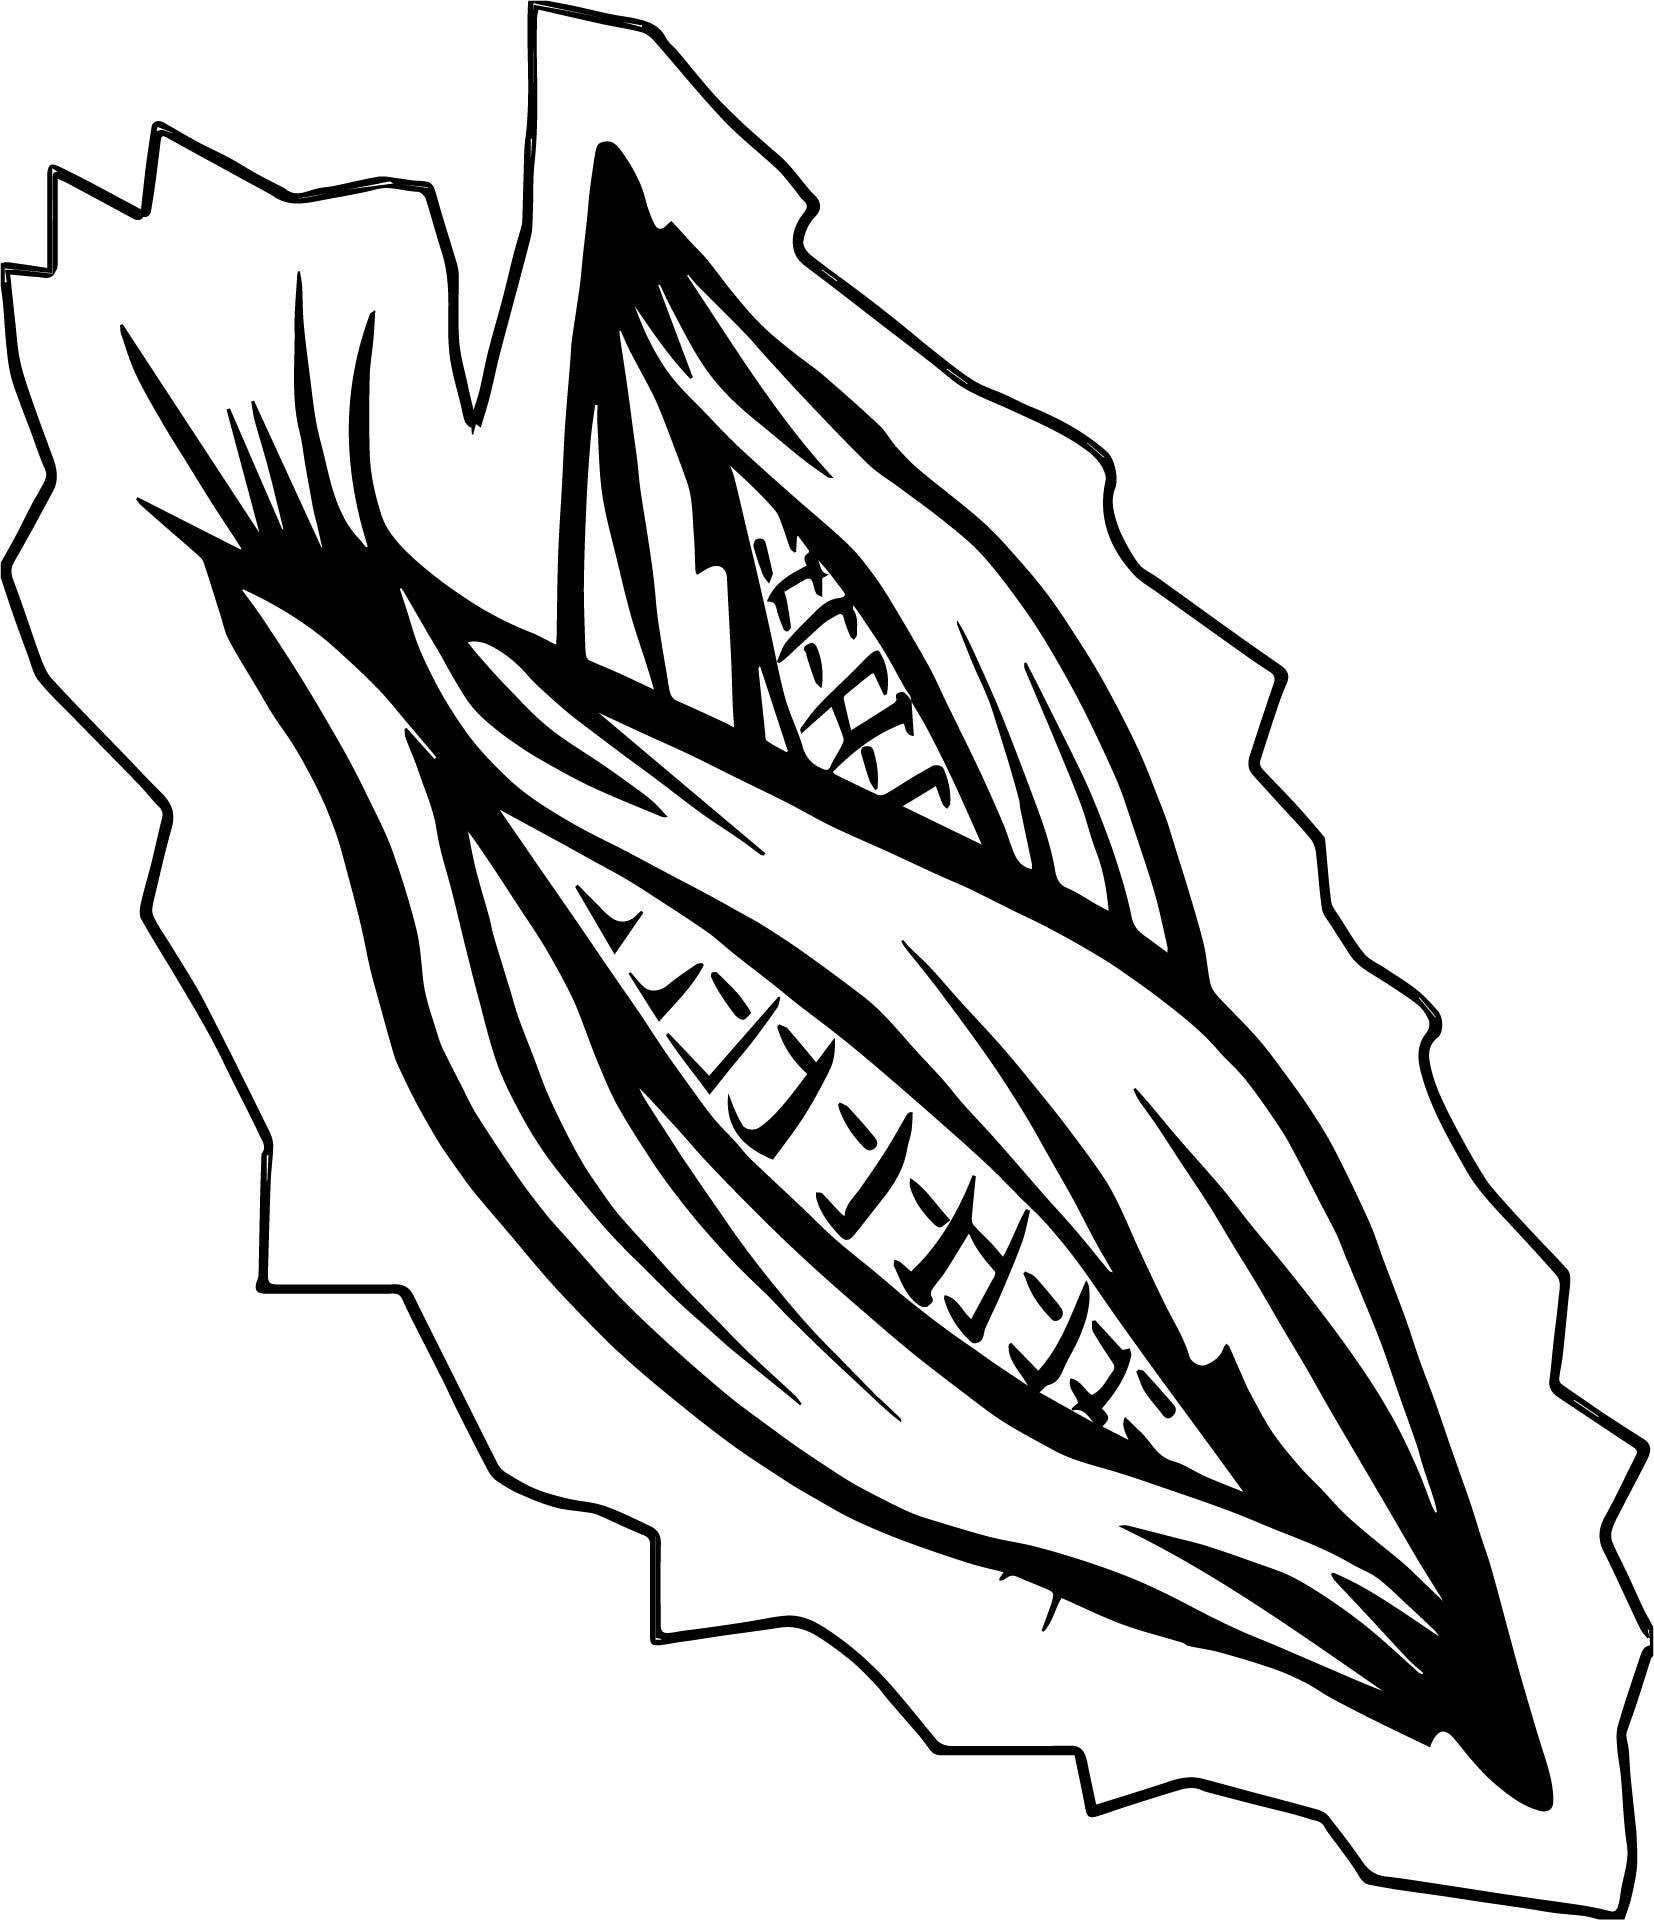 Cool Basket Of Vegetables Corn Coloring Page Coloring Pages Shopkins Colouring Pages Candy Coloring Pages